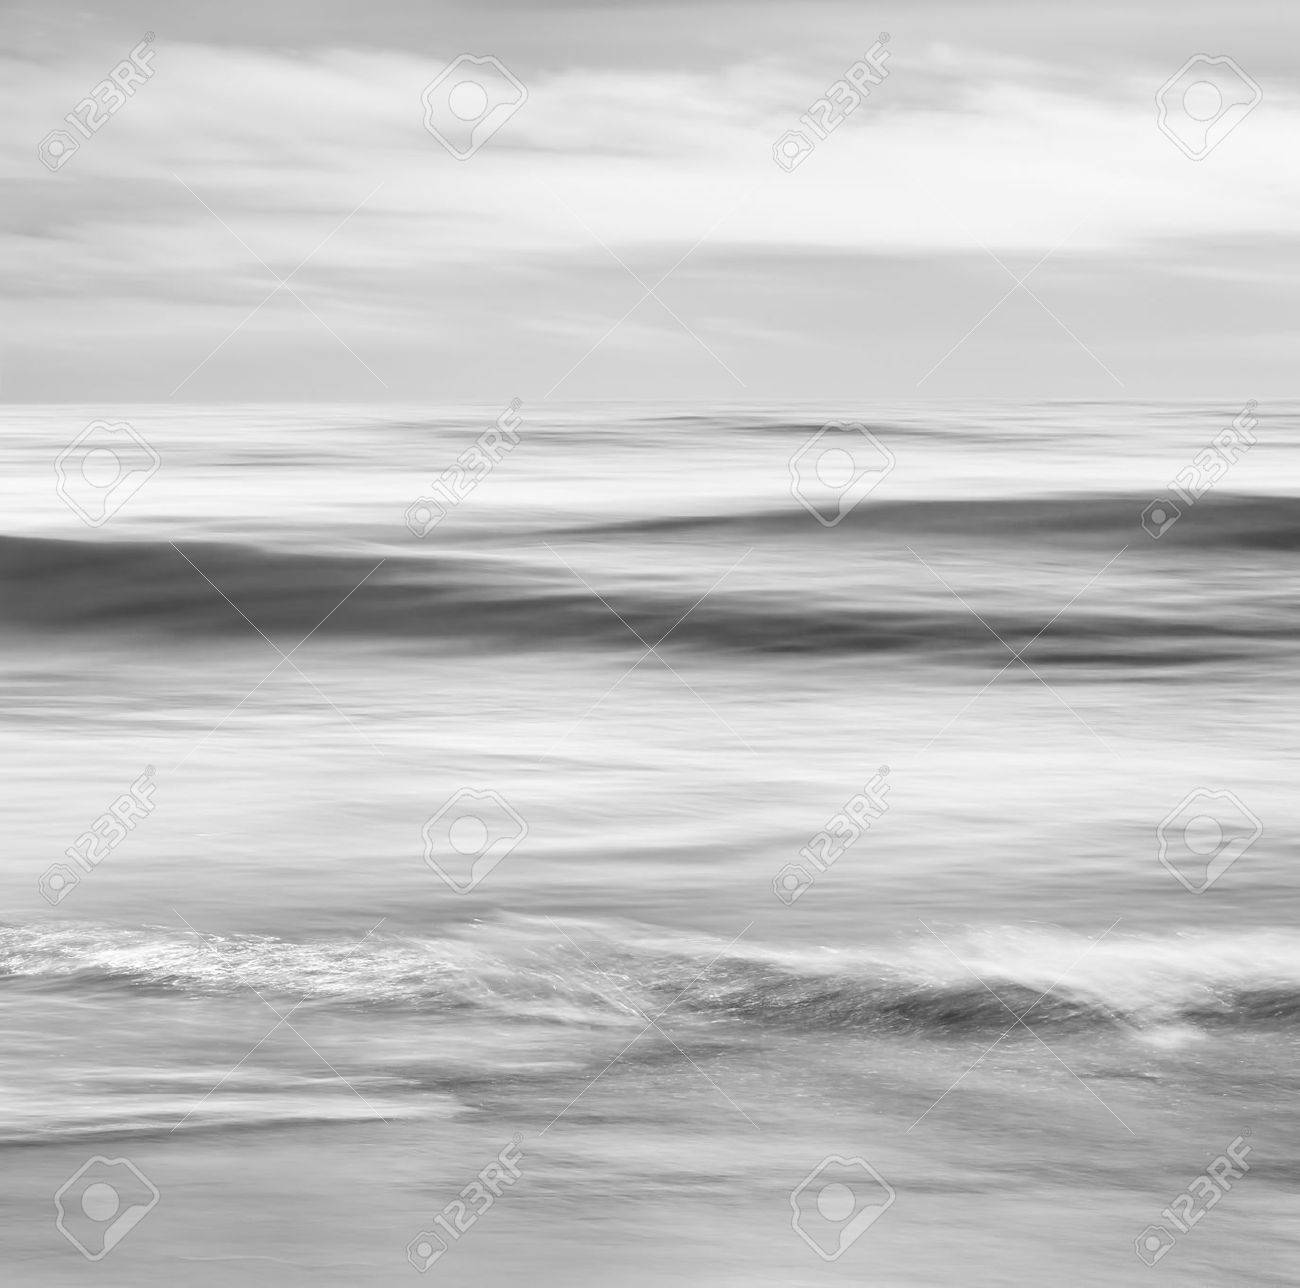 An abstract black and white seascape featuring converging ocean